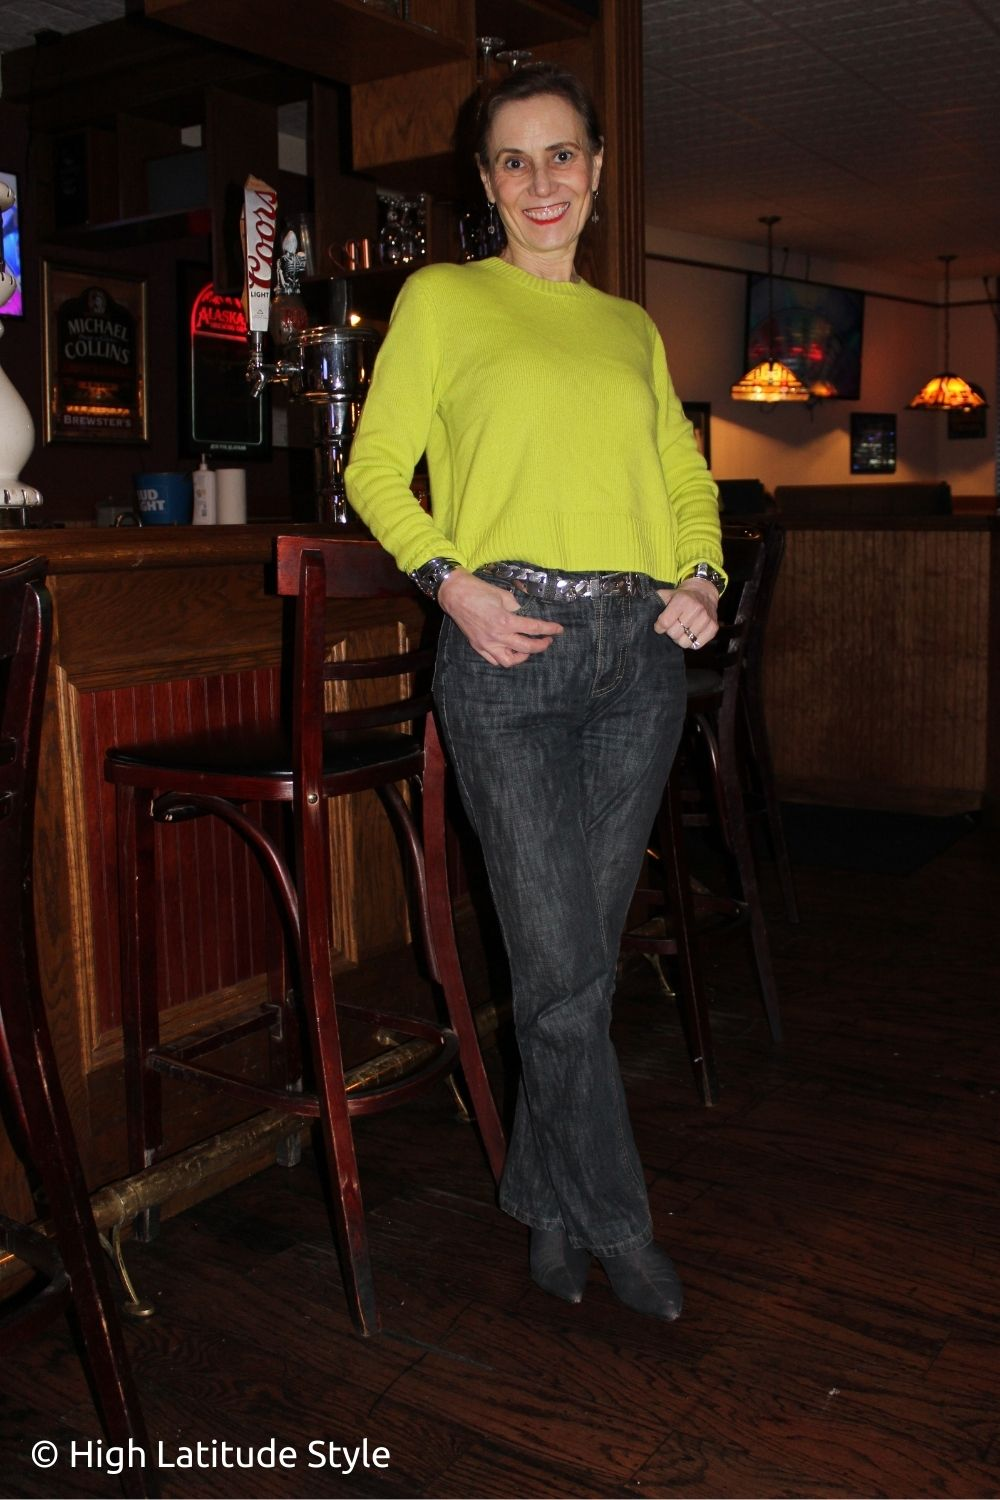 stylist in Italian jeans Italic sweater in lemon